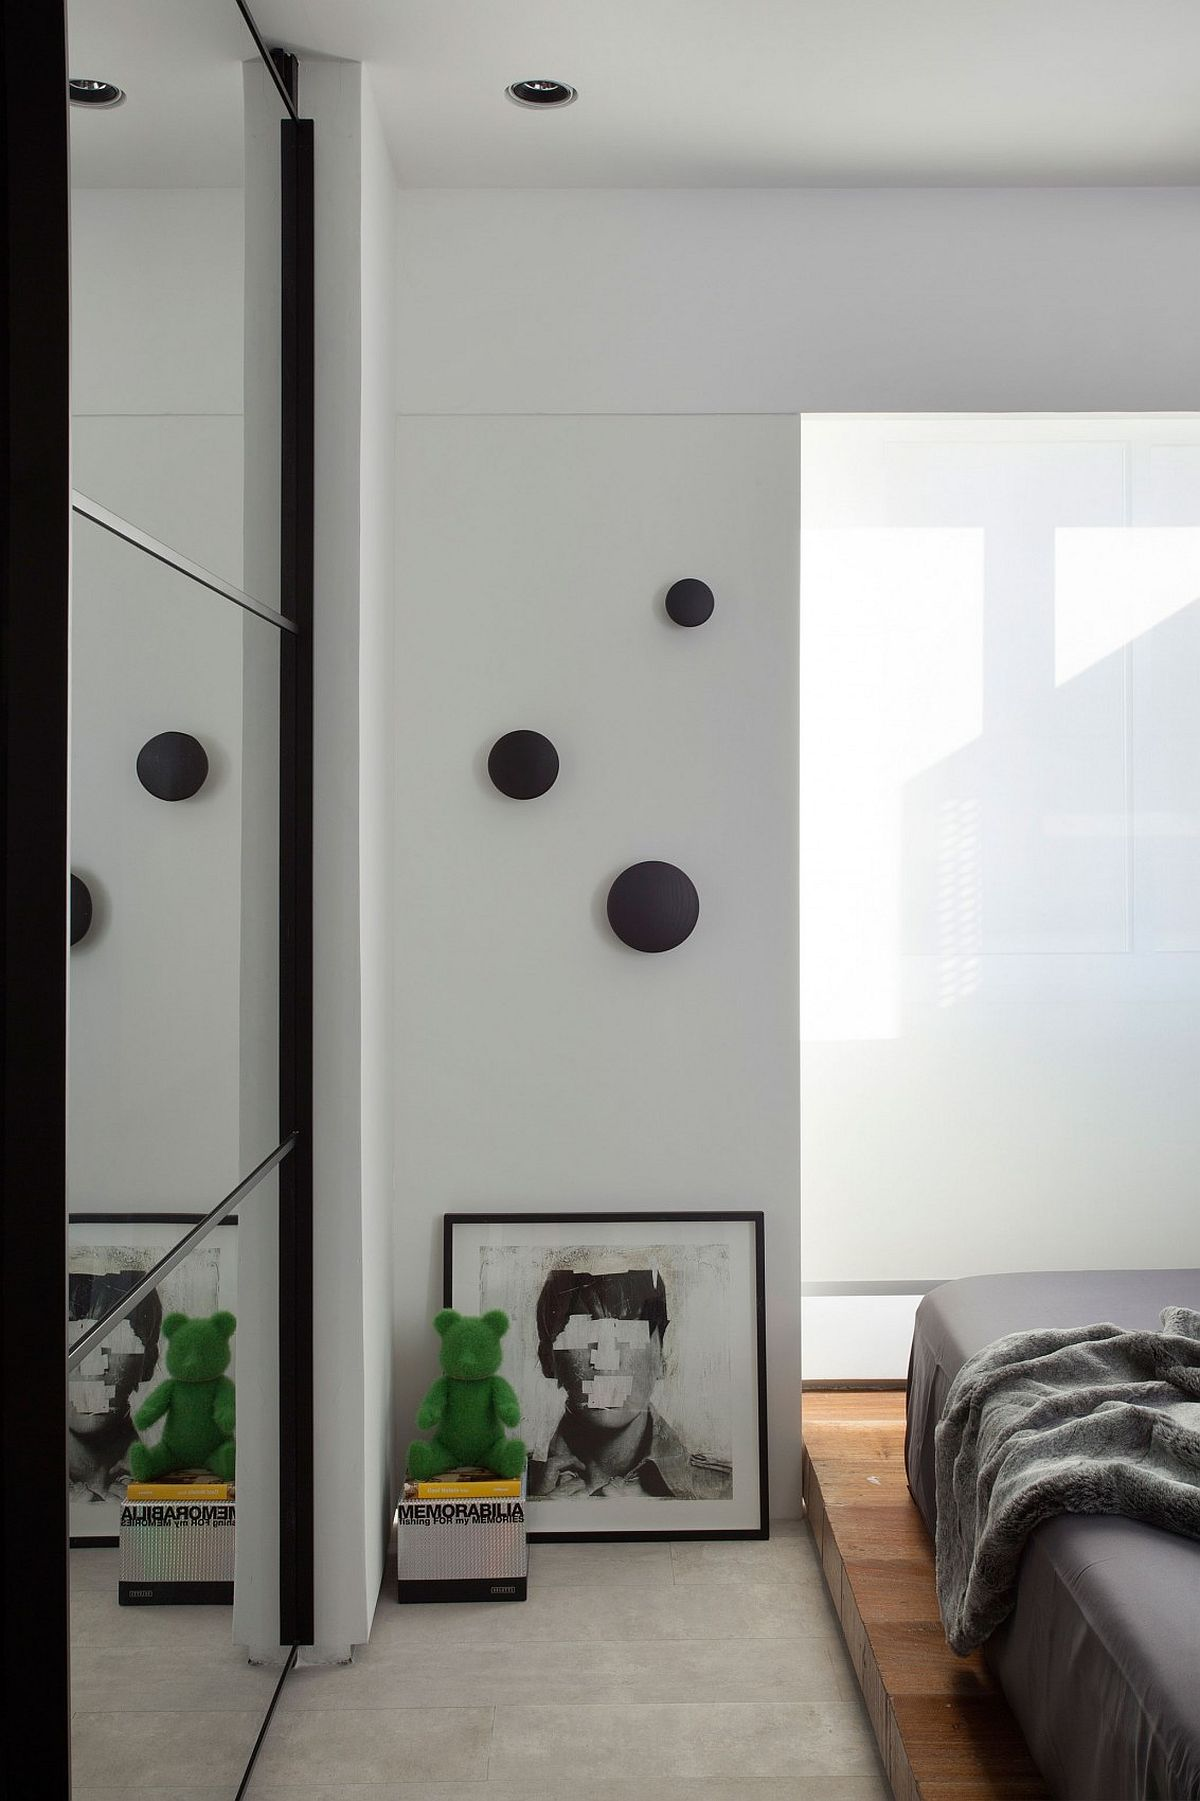 Black, white and gray form the basic color scheme of the minimal bedroom